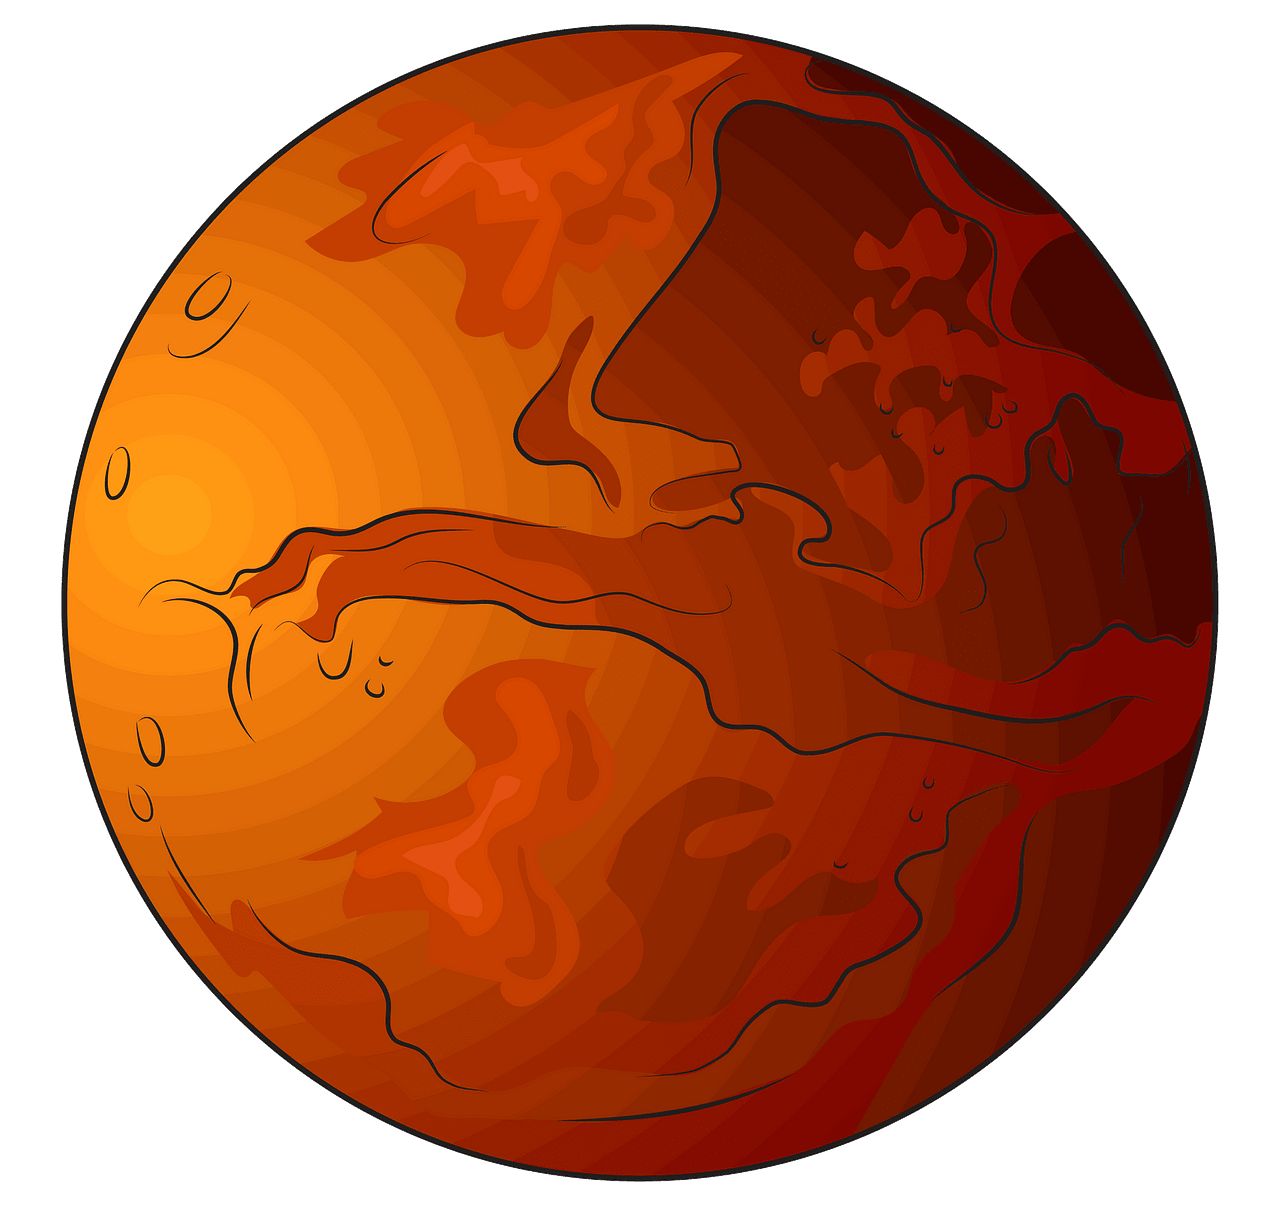 Mars clipart. Free download..